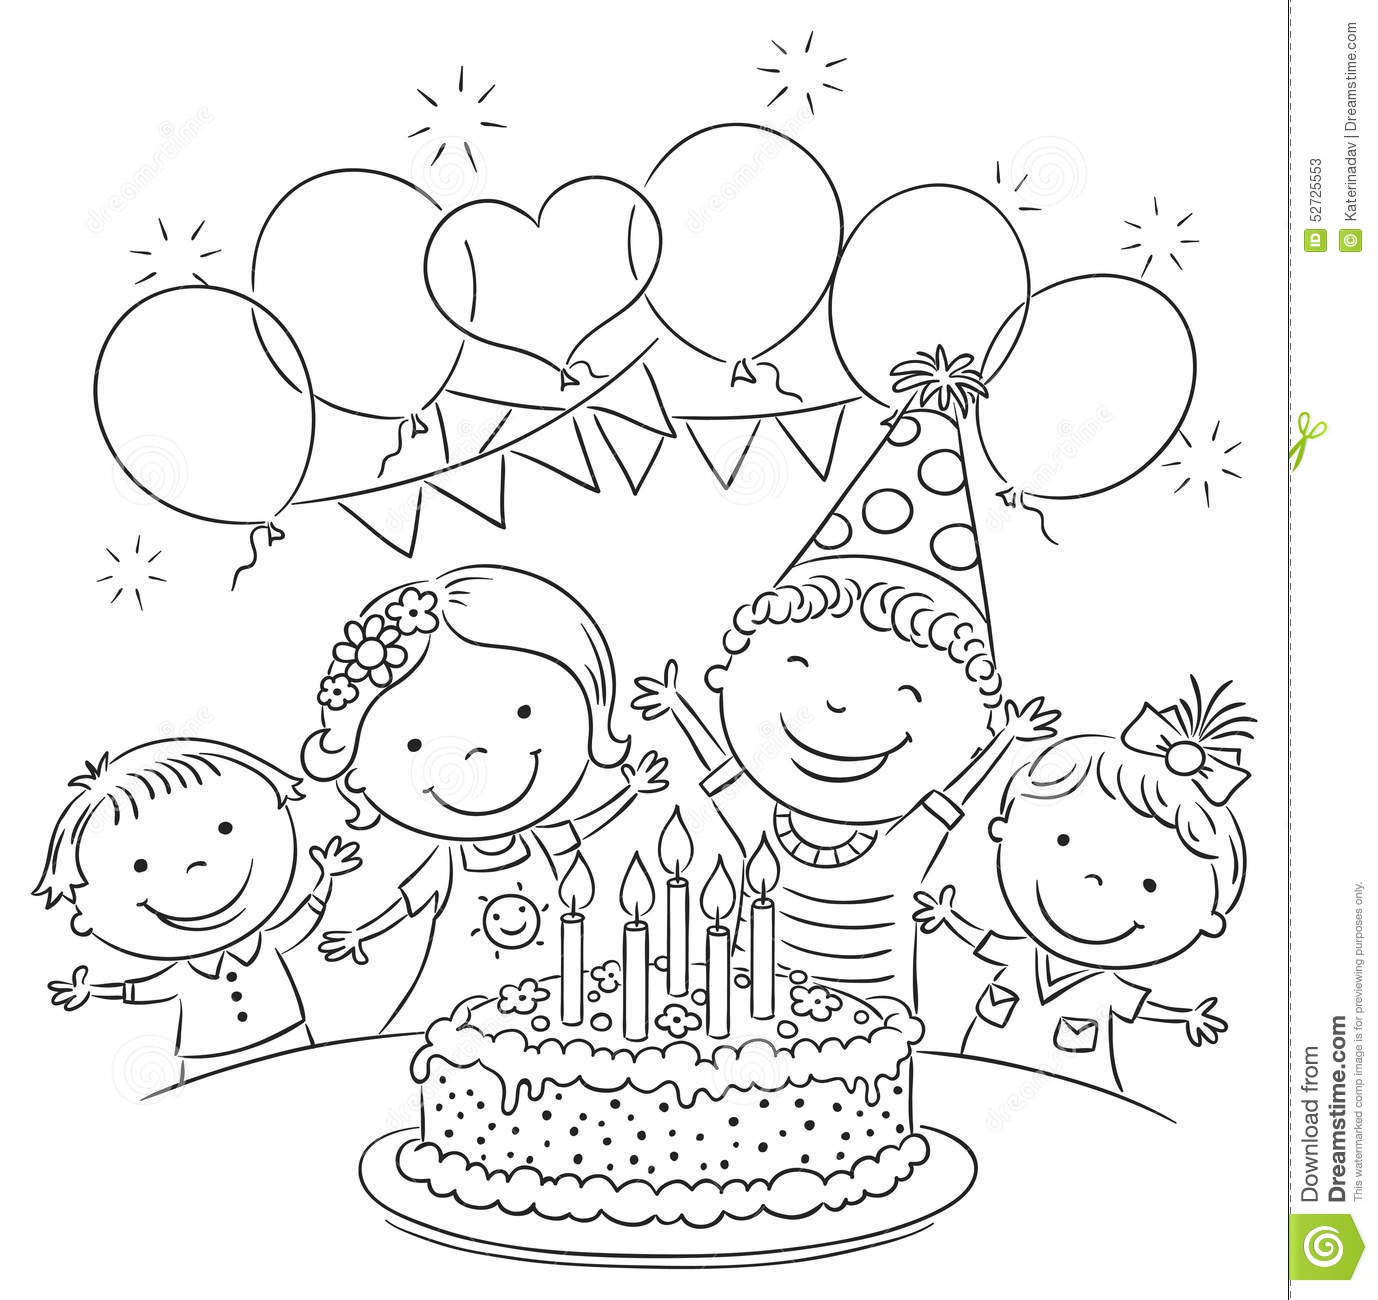 birthday images black and white